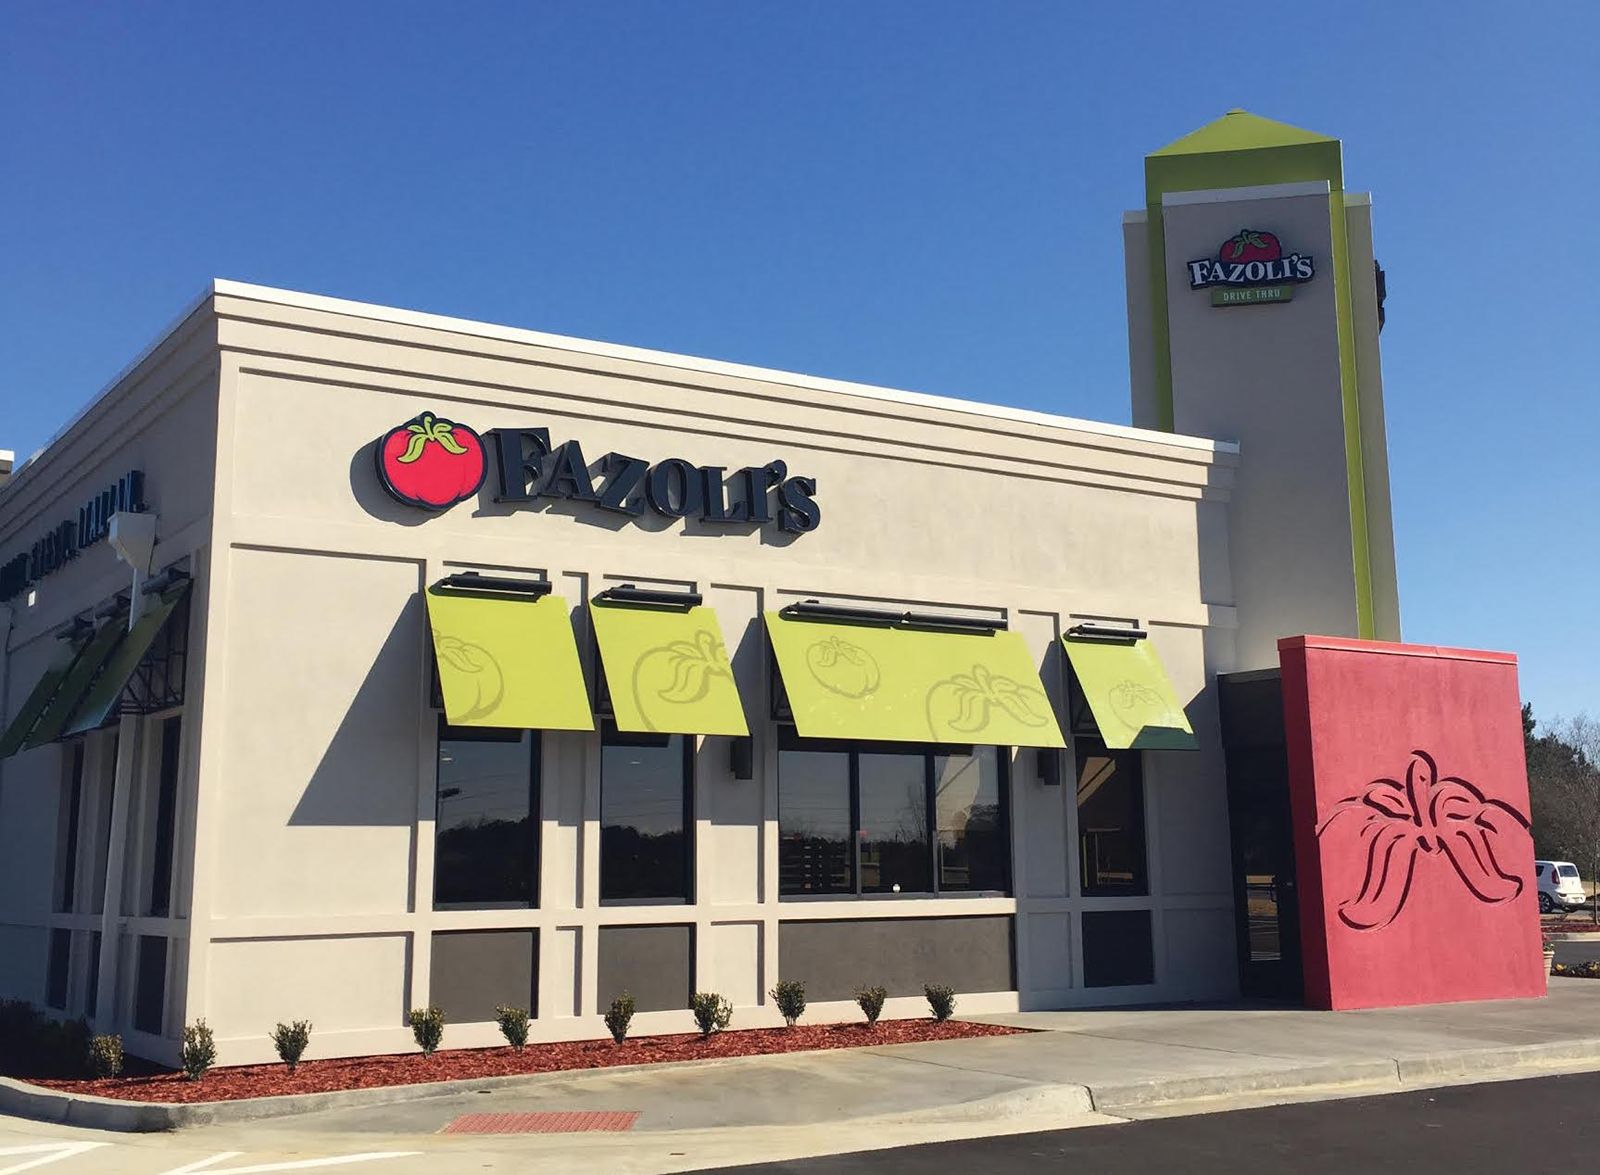 Fazoli's Continues Growth Momentum With New Development Agreements, Grand Openings, Franchisee Incentives And An Addition To The Development Team